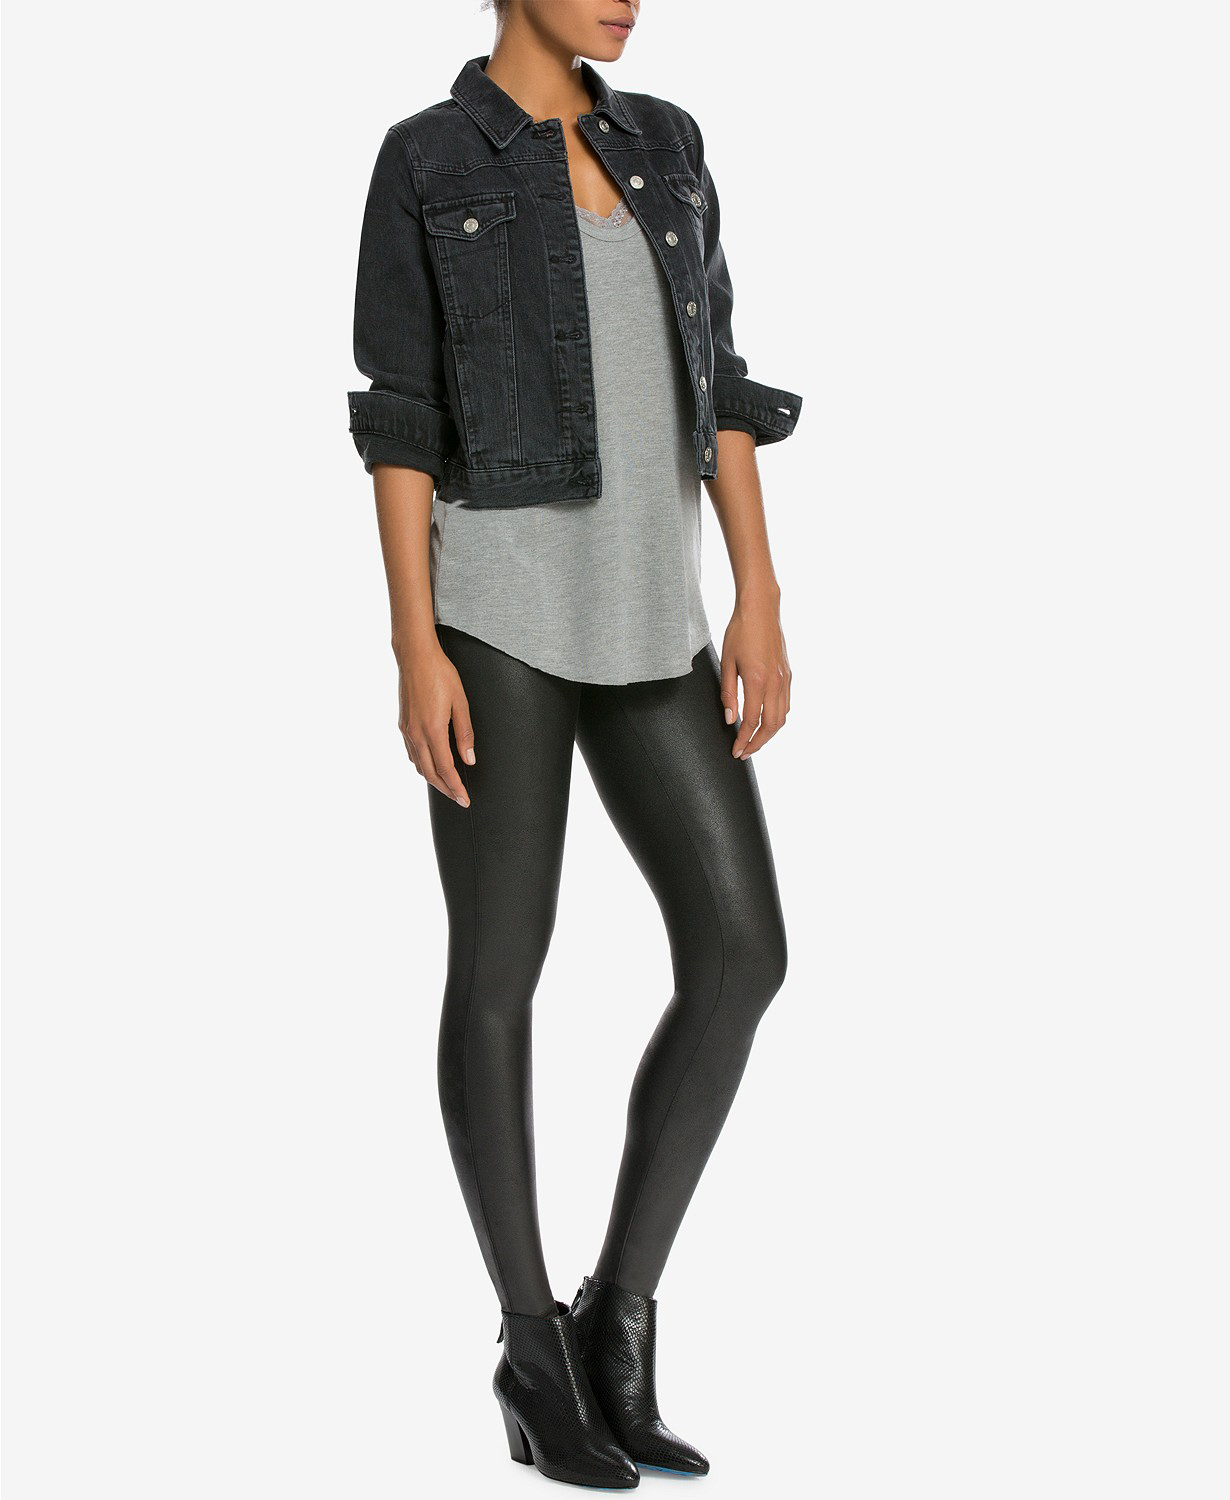 Spanx Faux Leather Leggings Everyone Is Obsessed With Are ...